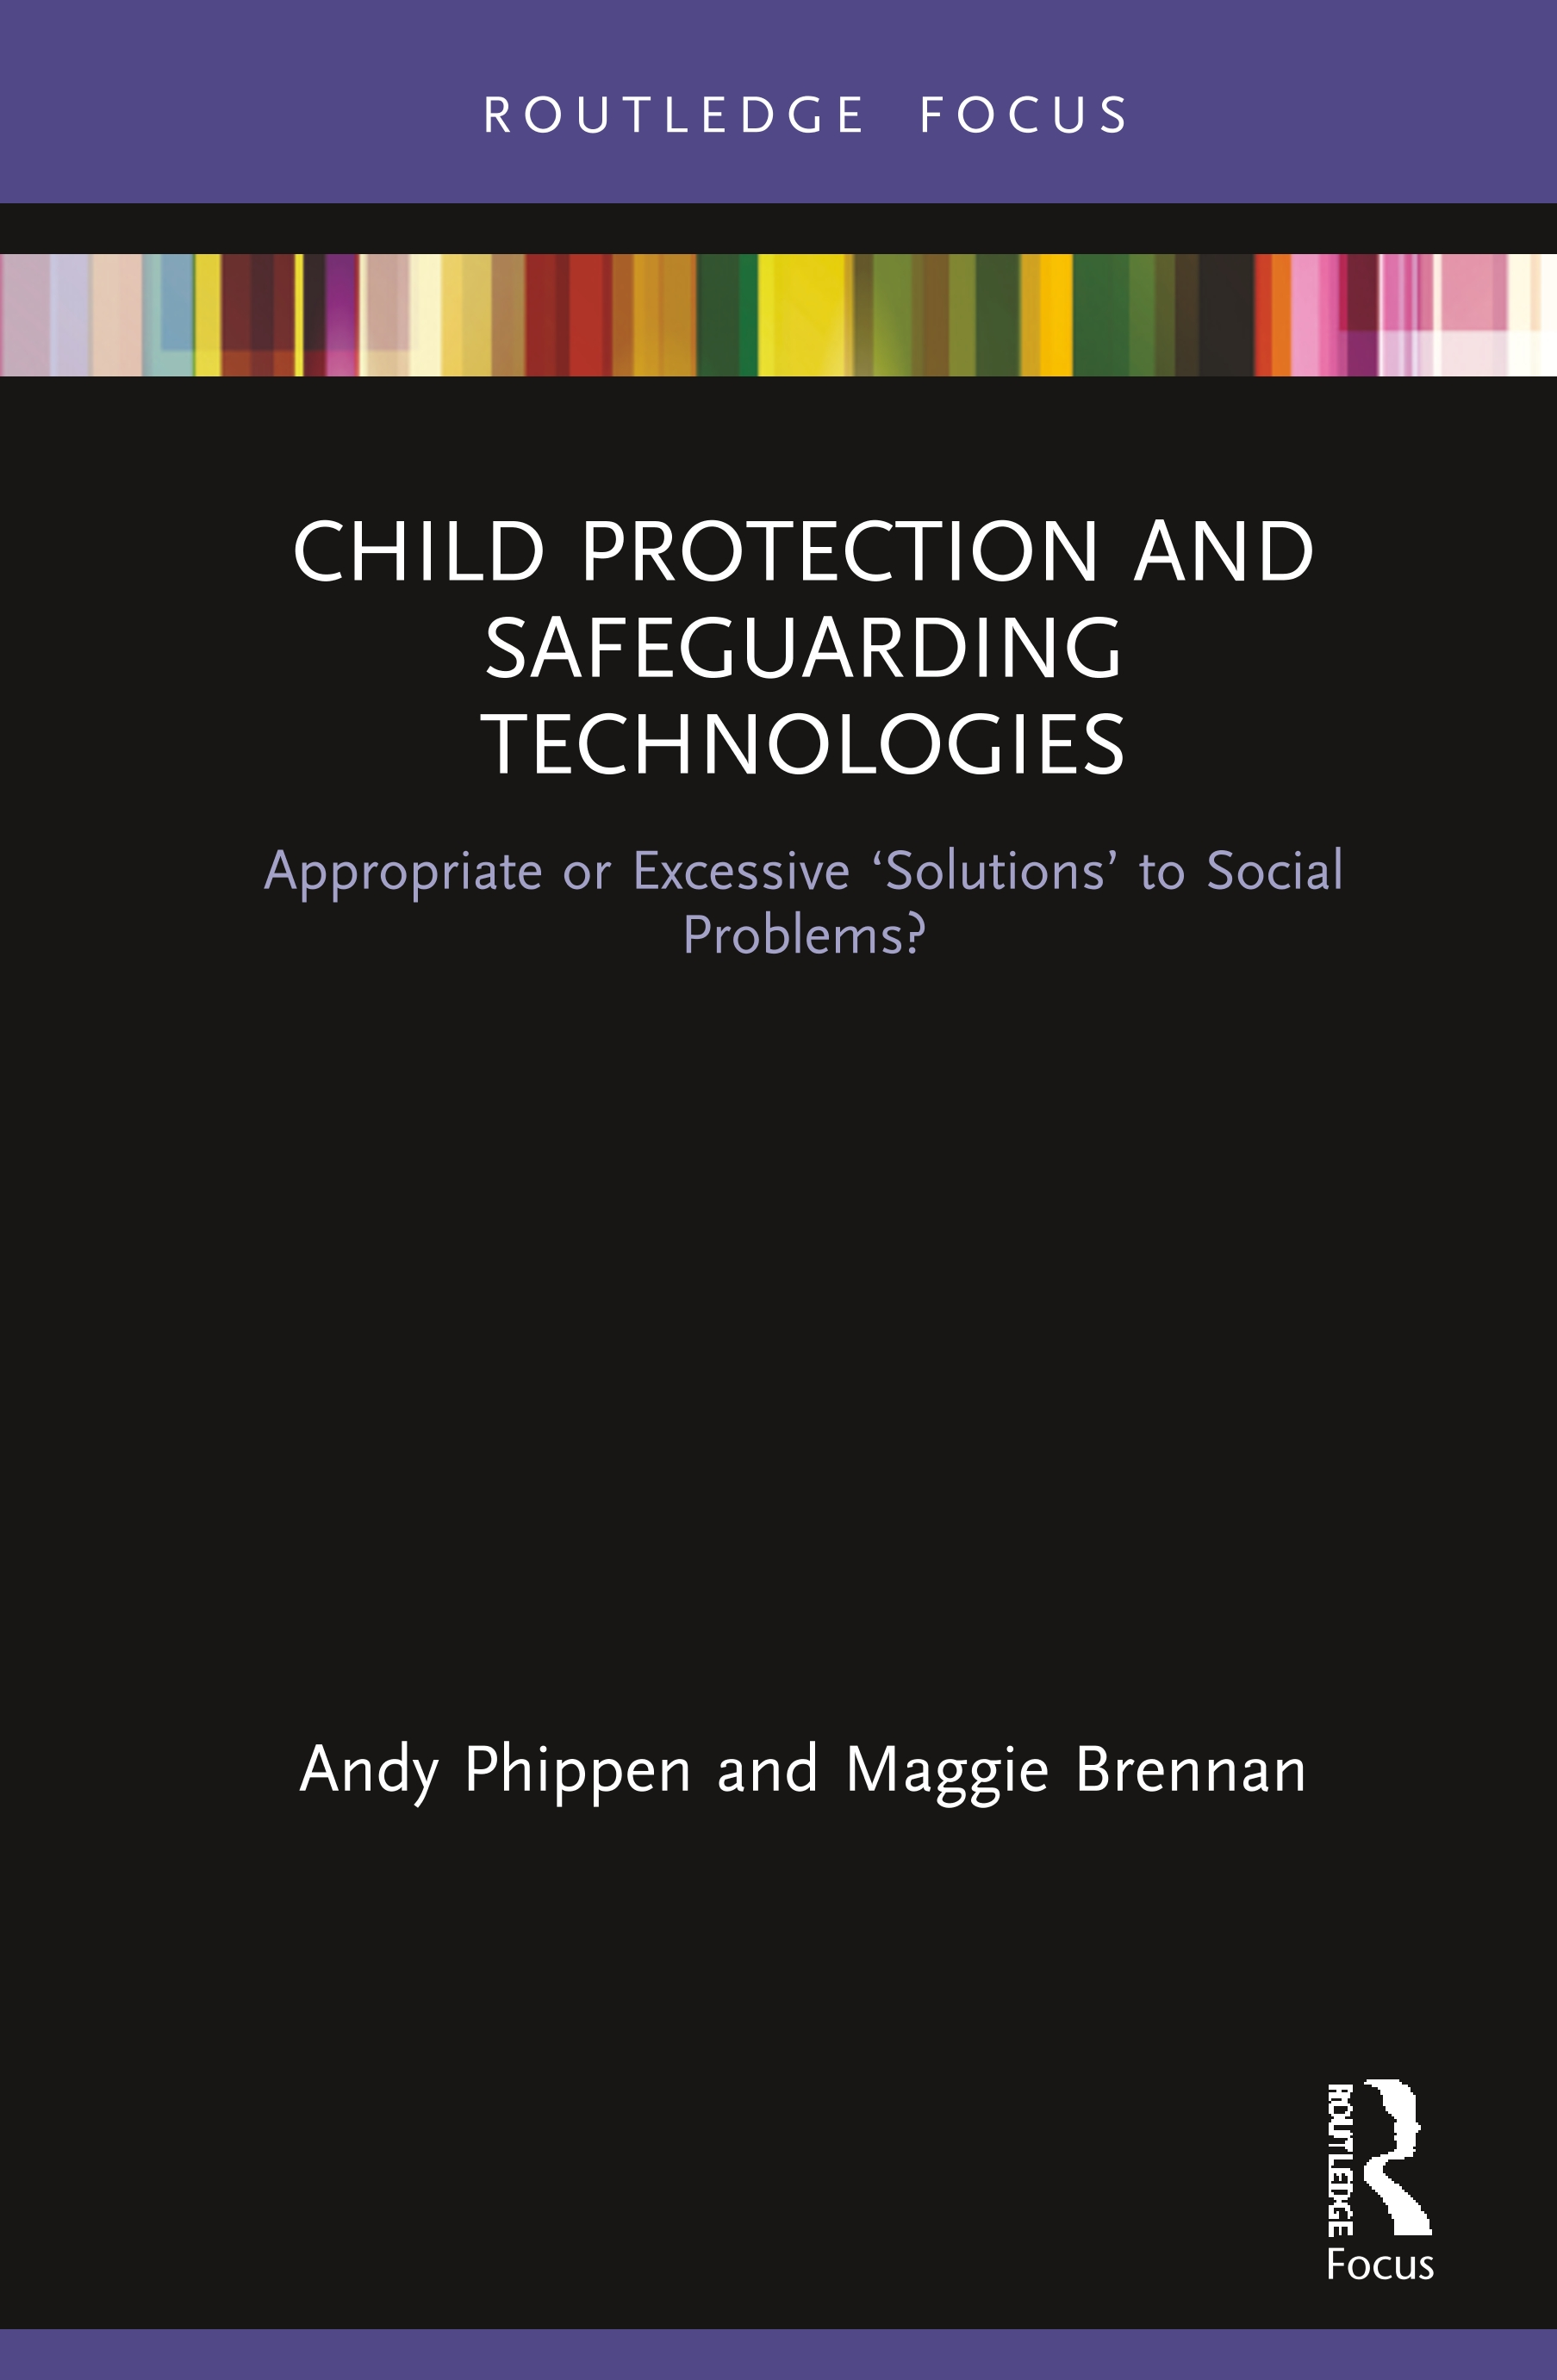 Child Protection and Safeguarding Technologies: Appropriate or Excessive 'Solutions' to Social Problems? book cover